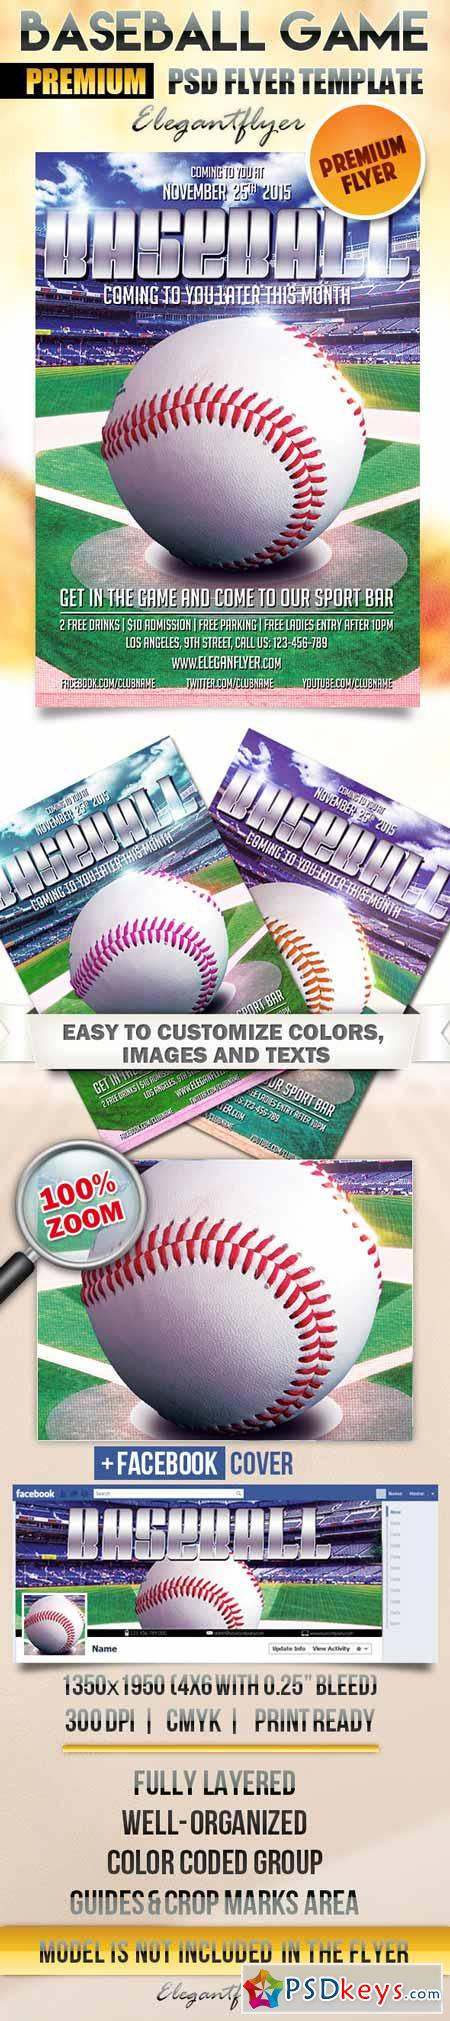 baseball game flyer psd template facebook cover free download photoshop vector stock image. Black Bedroom Furniture Sets. Home Design Ideas